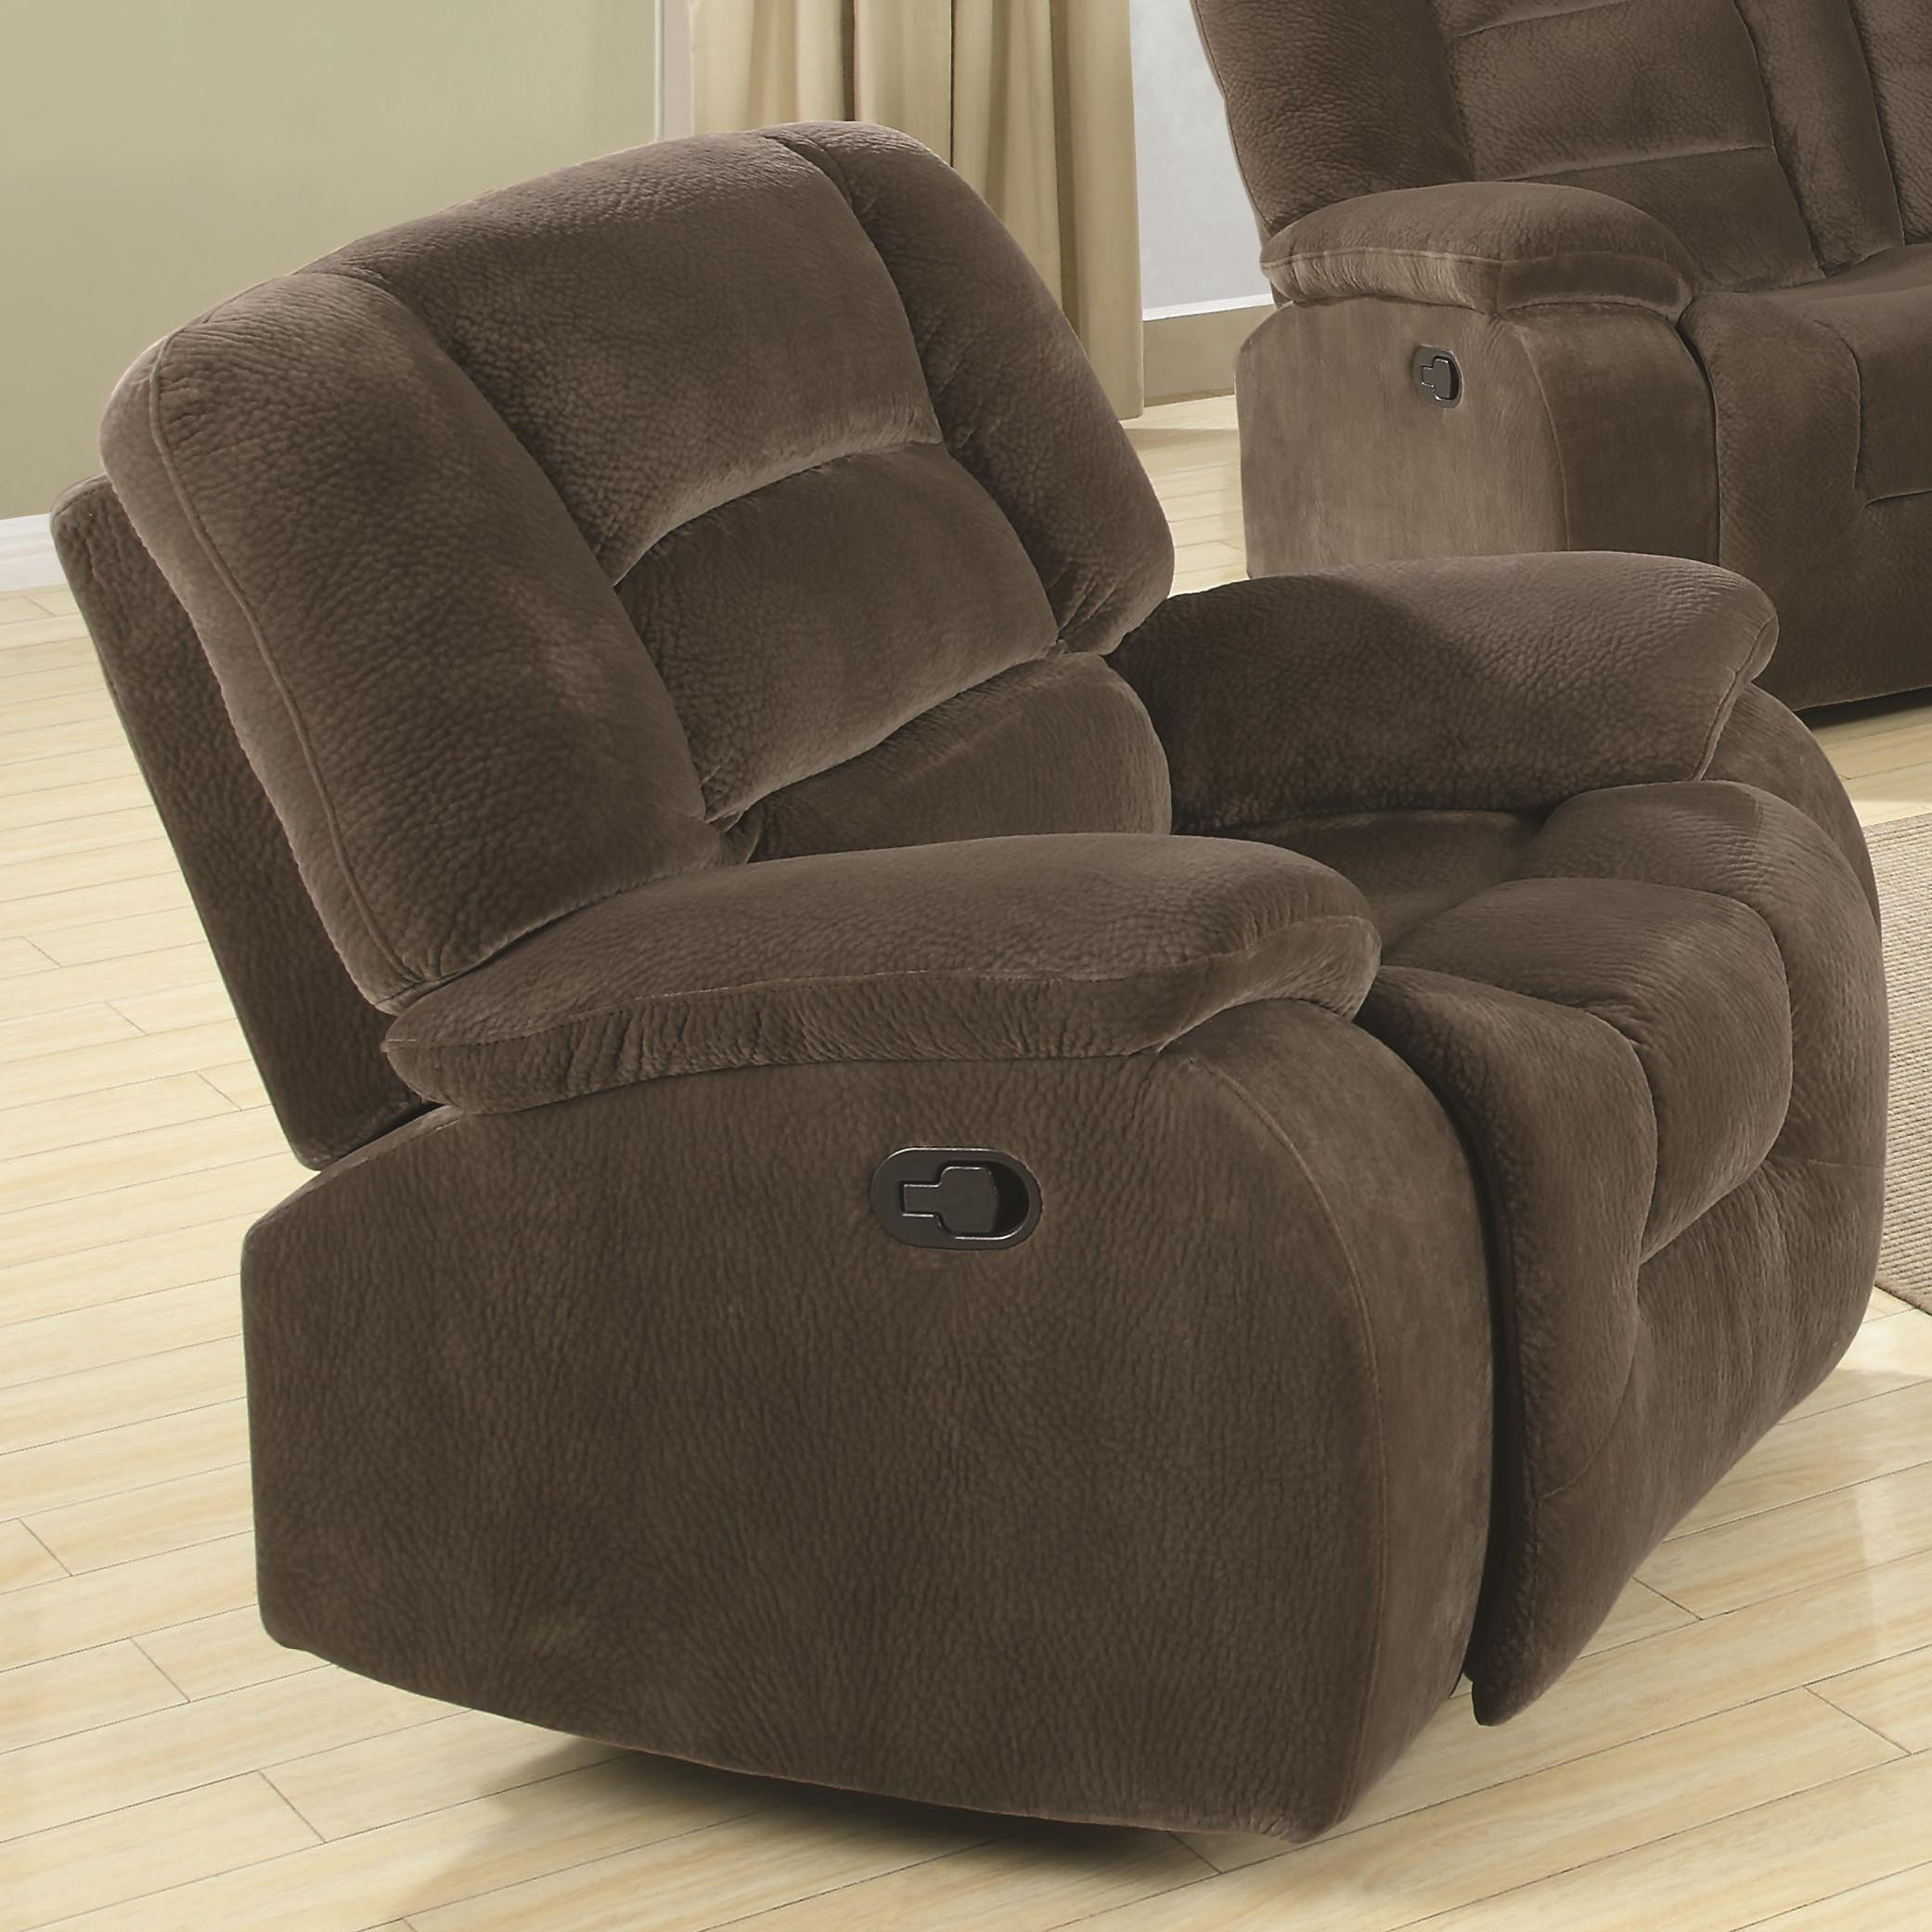 Charlie collection 600991 padded velvet reclining sofa loveseat set Loveseats that recline